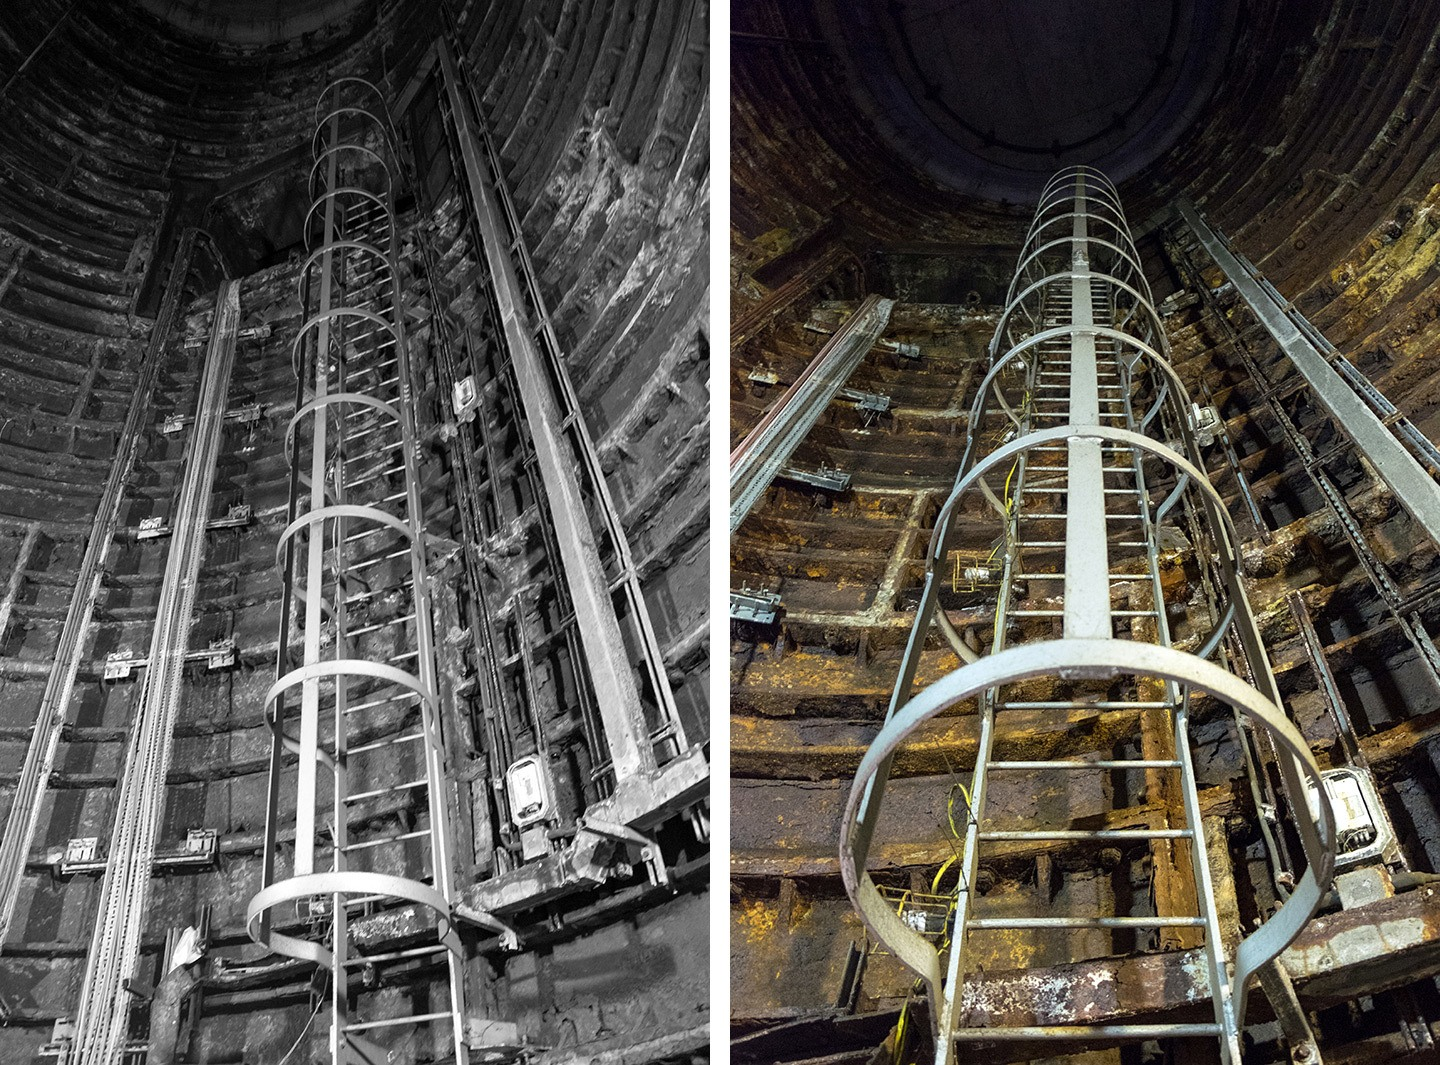 Lift shaft in Euston's secret tunnels, London